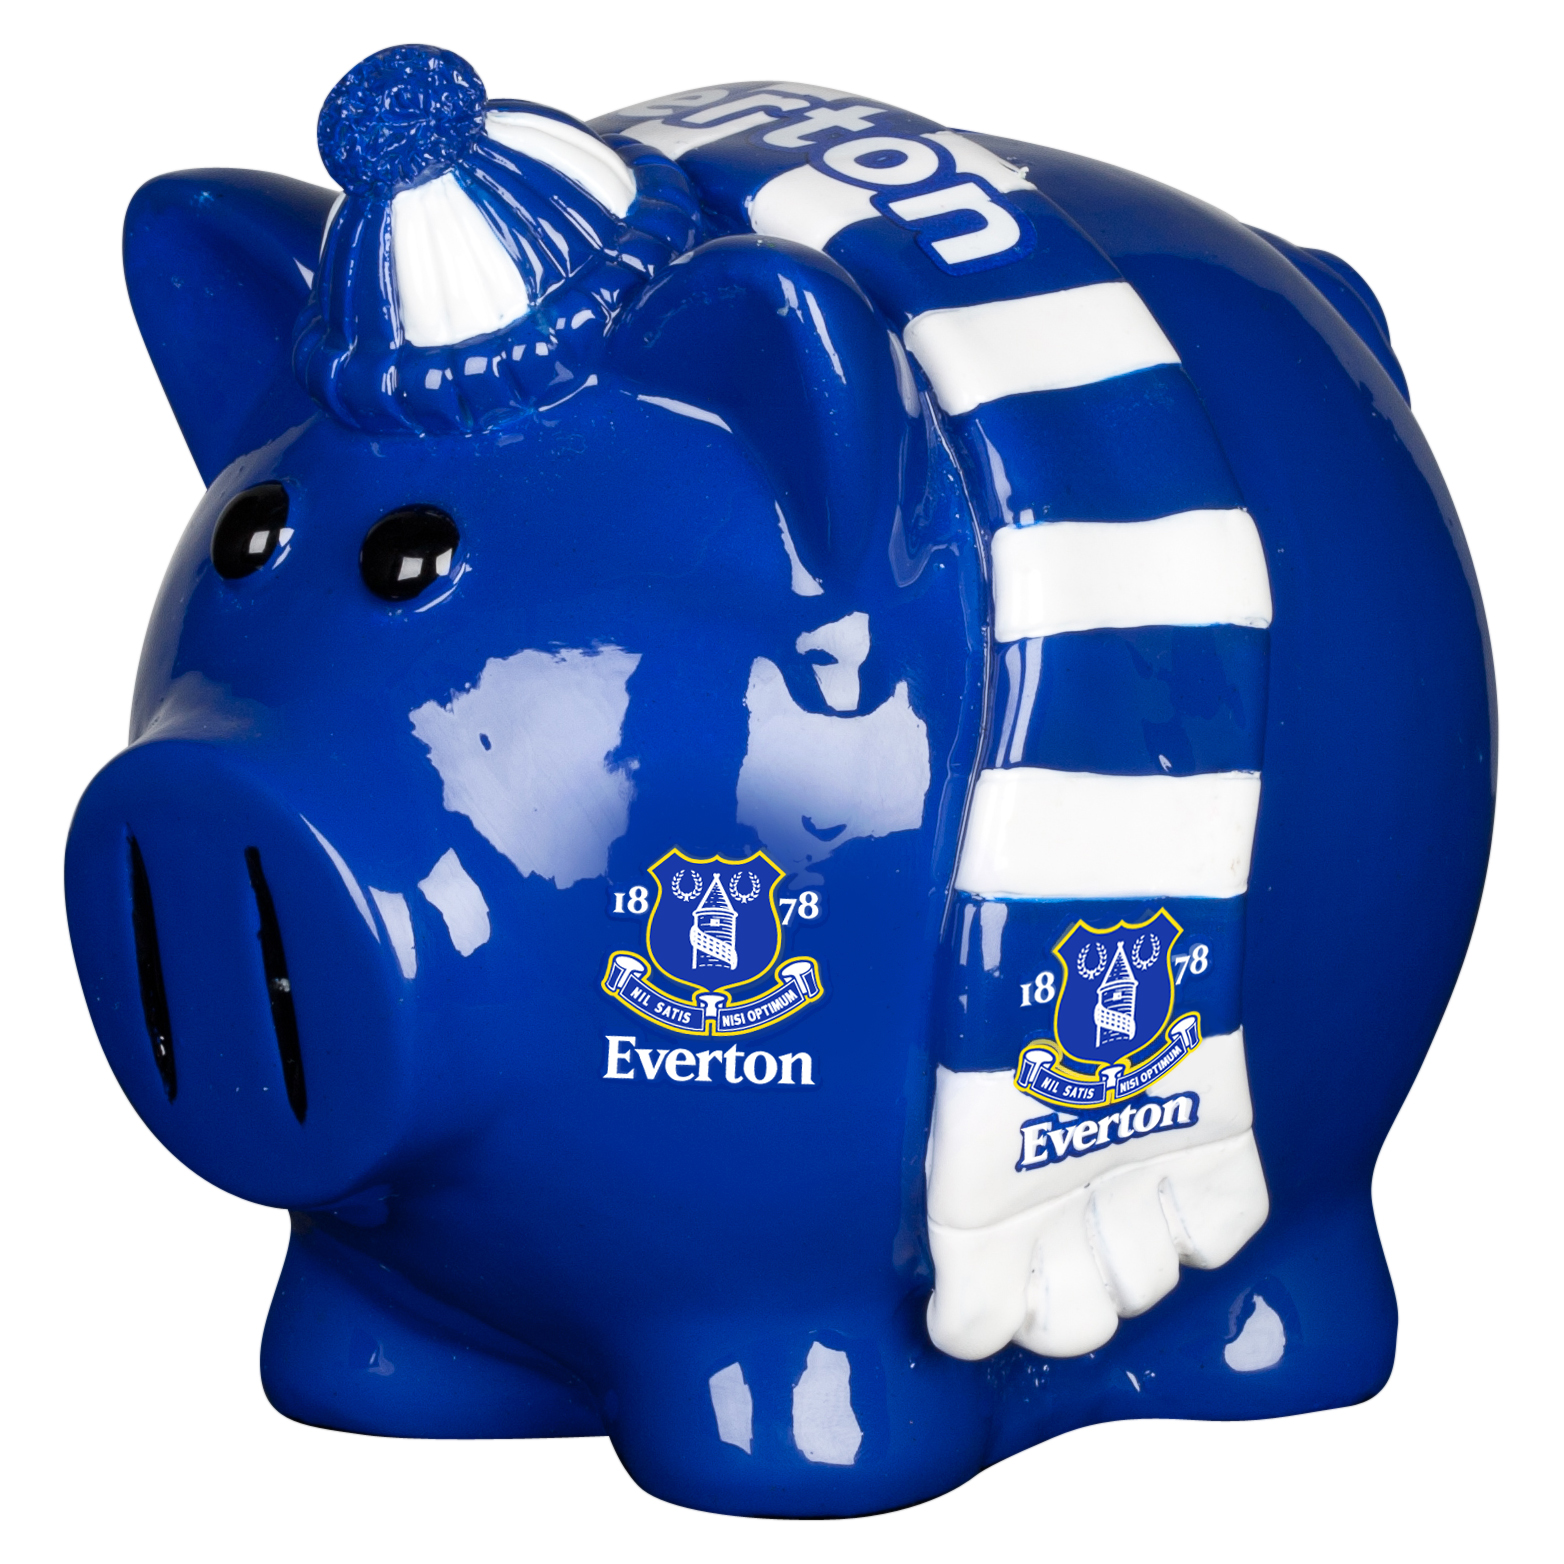 Everton Scarf Themed Small Piggy Bank - 4x4inch